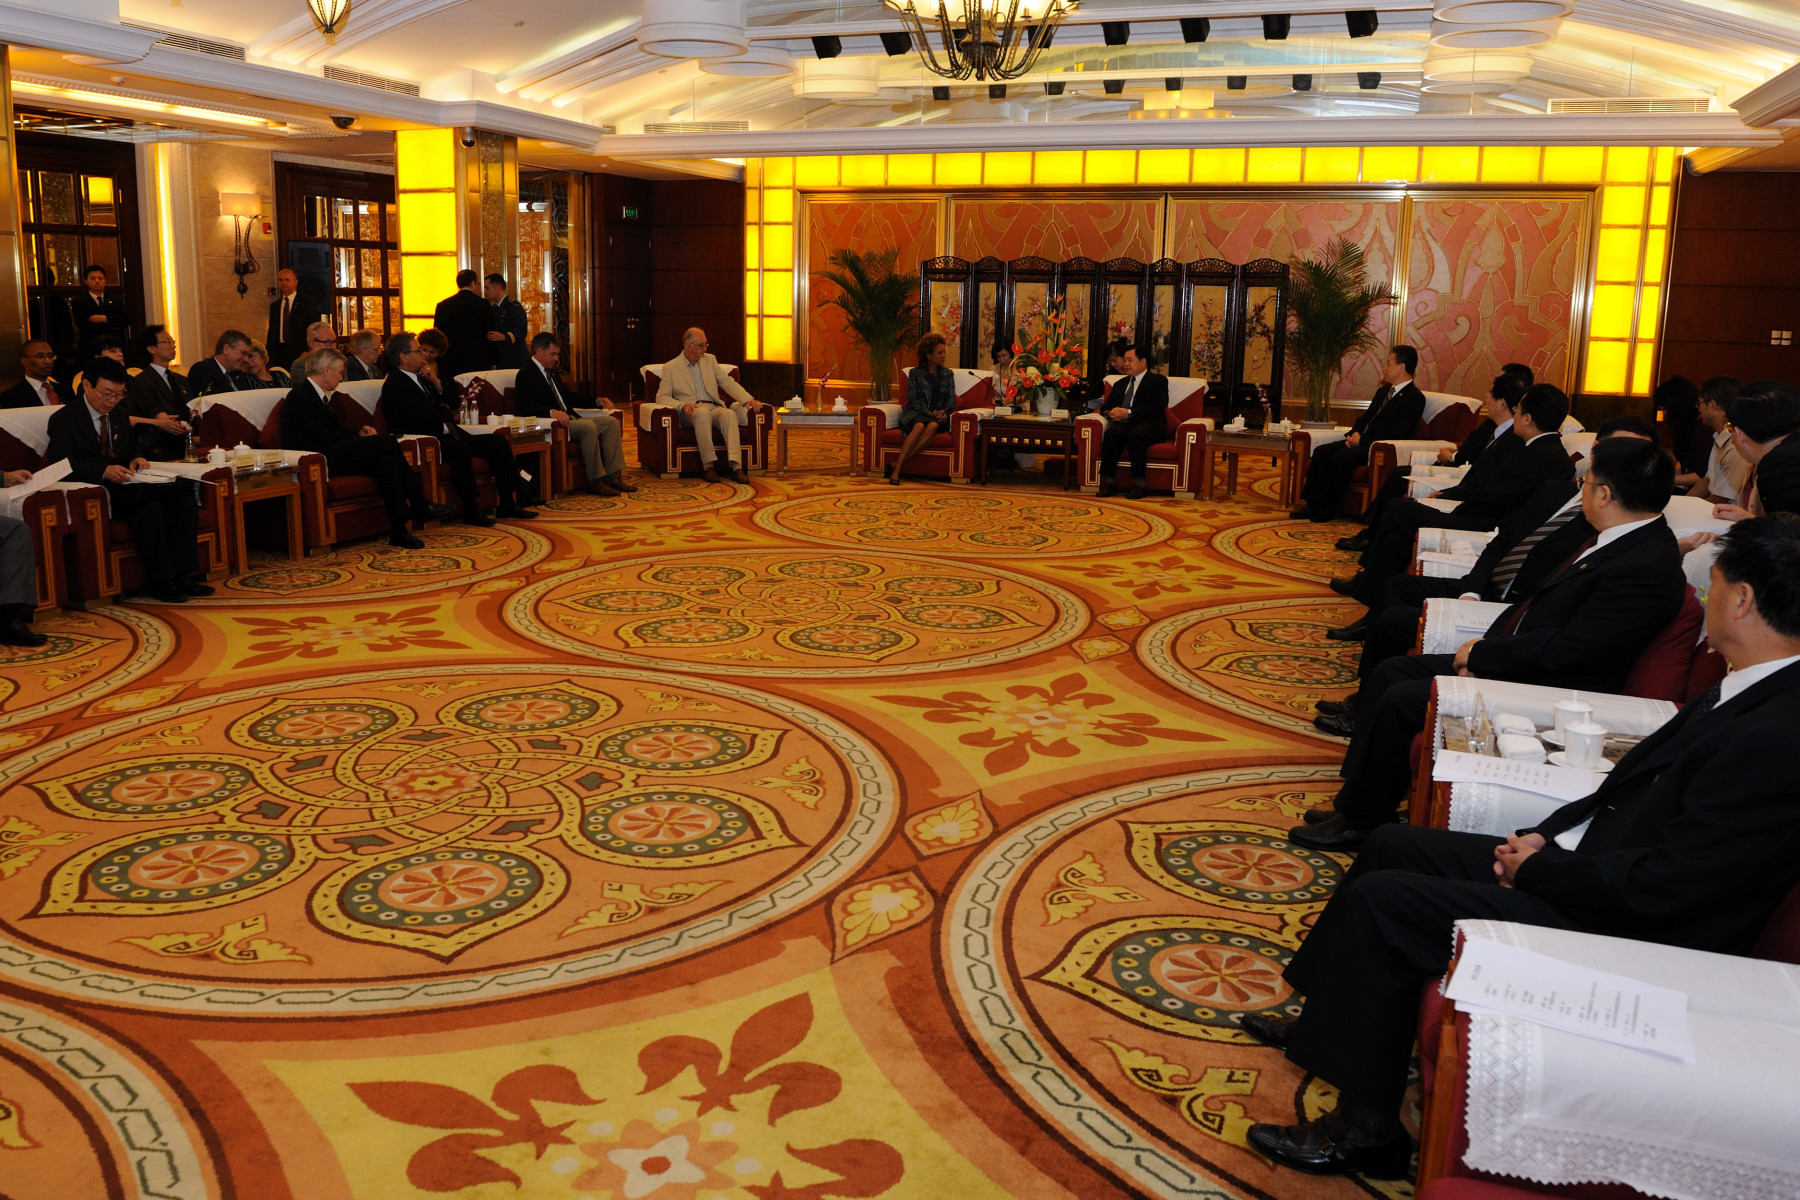 The meeting took place in the Dignitary Hall of the Jinjiang Hotel, in Chengdu.